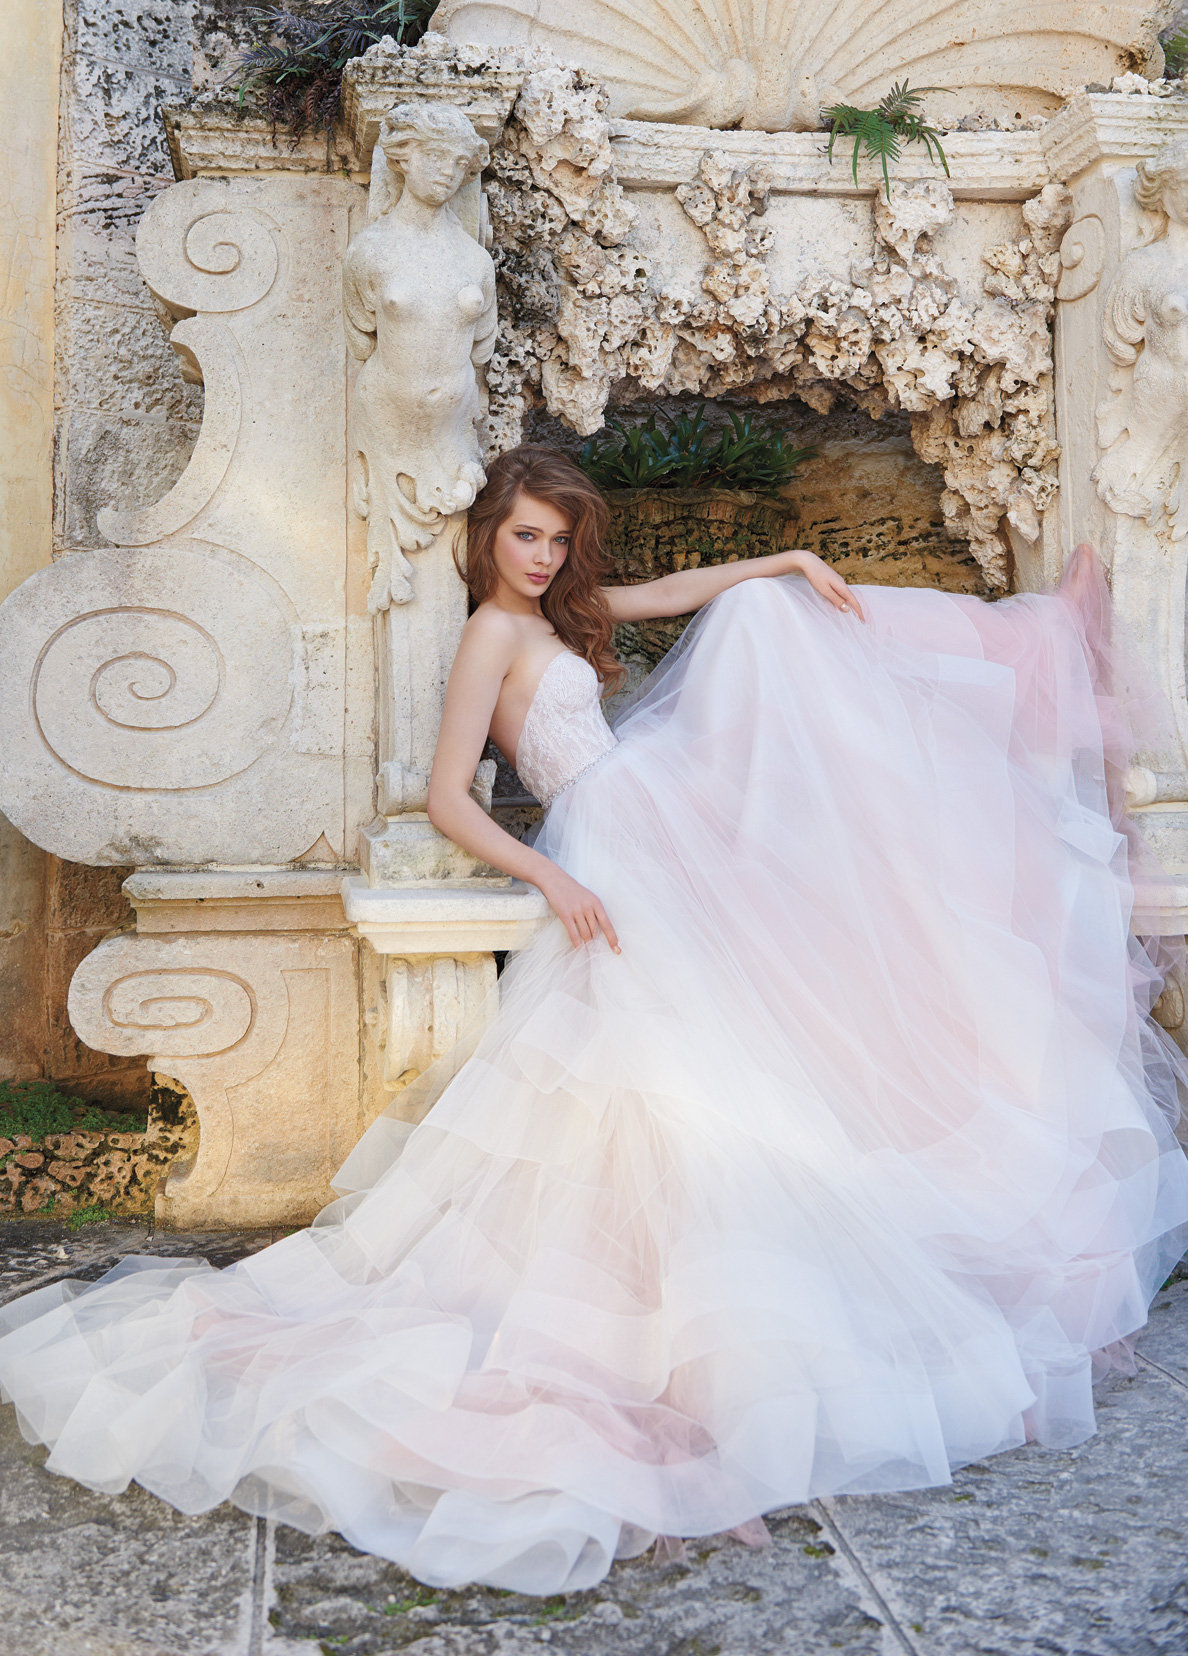 Bridal Gowns and Wedding Dresses by JLM Couture - Style 2510